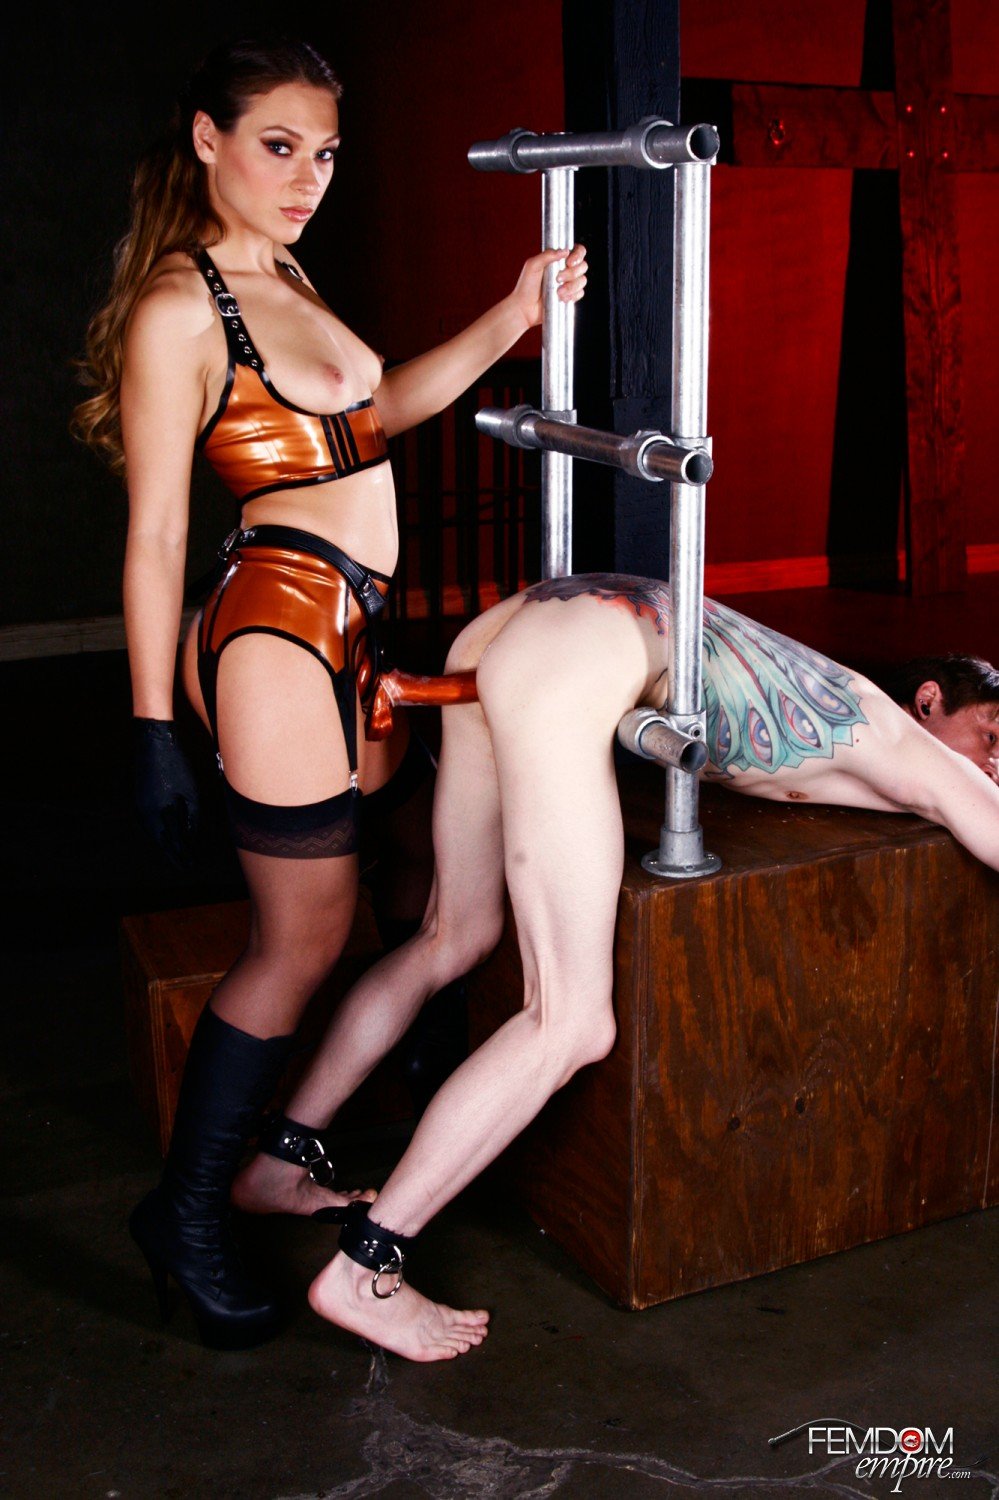 Mistress ass slave worship amp tease 7